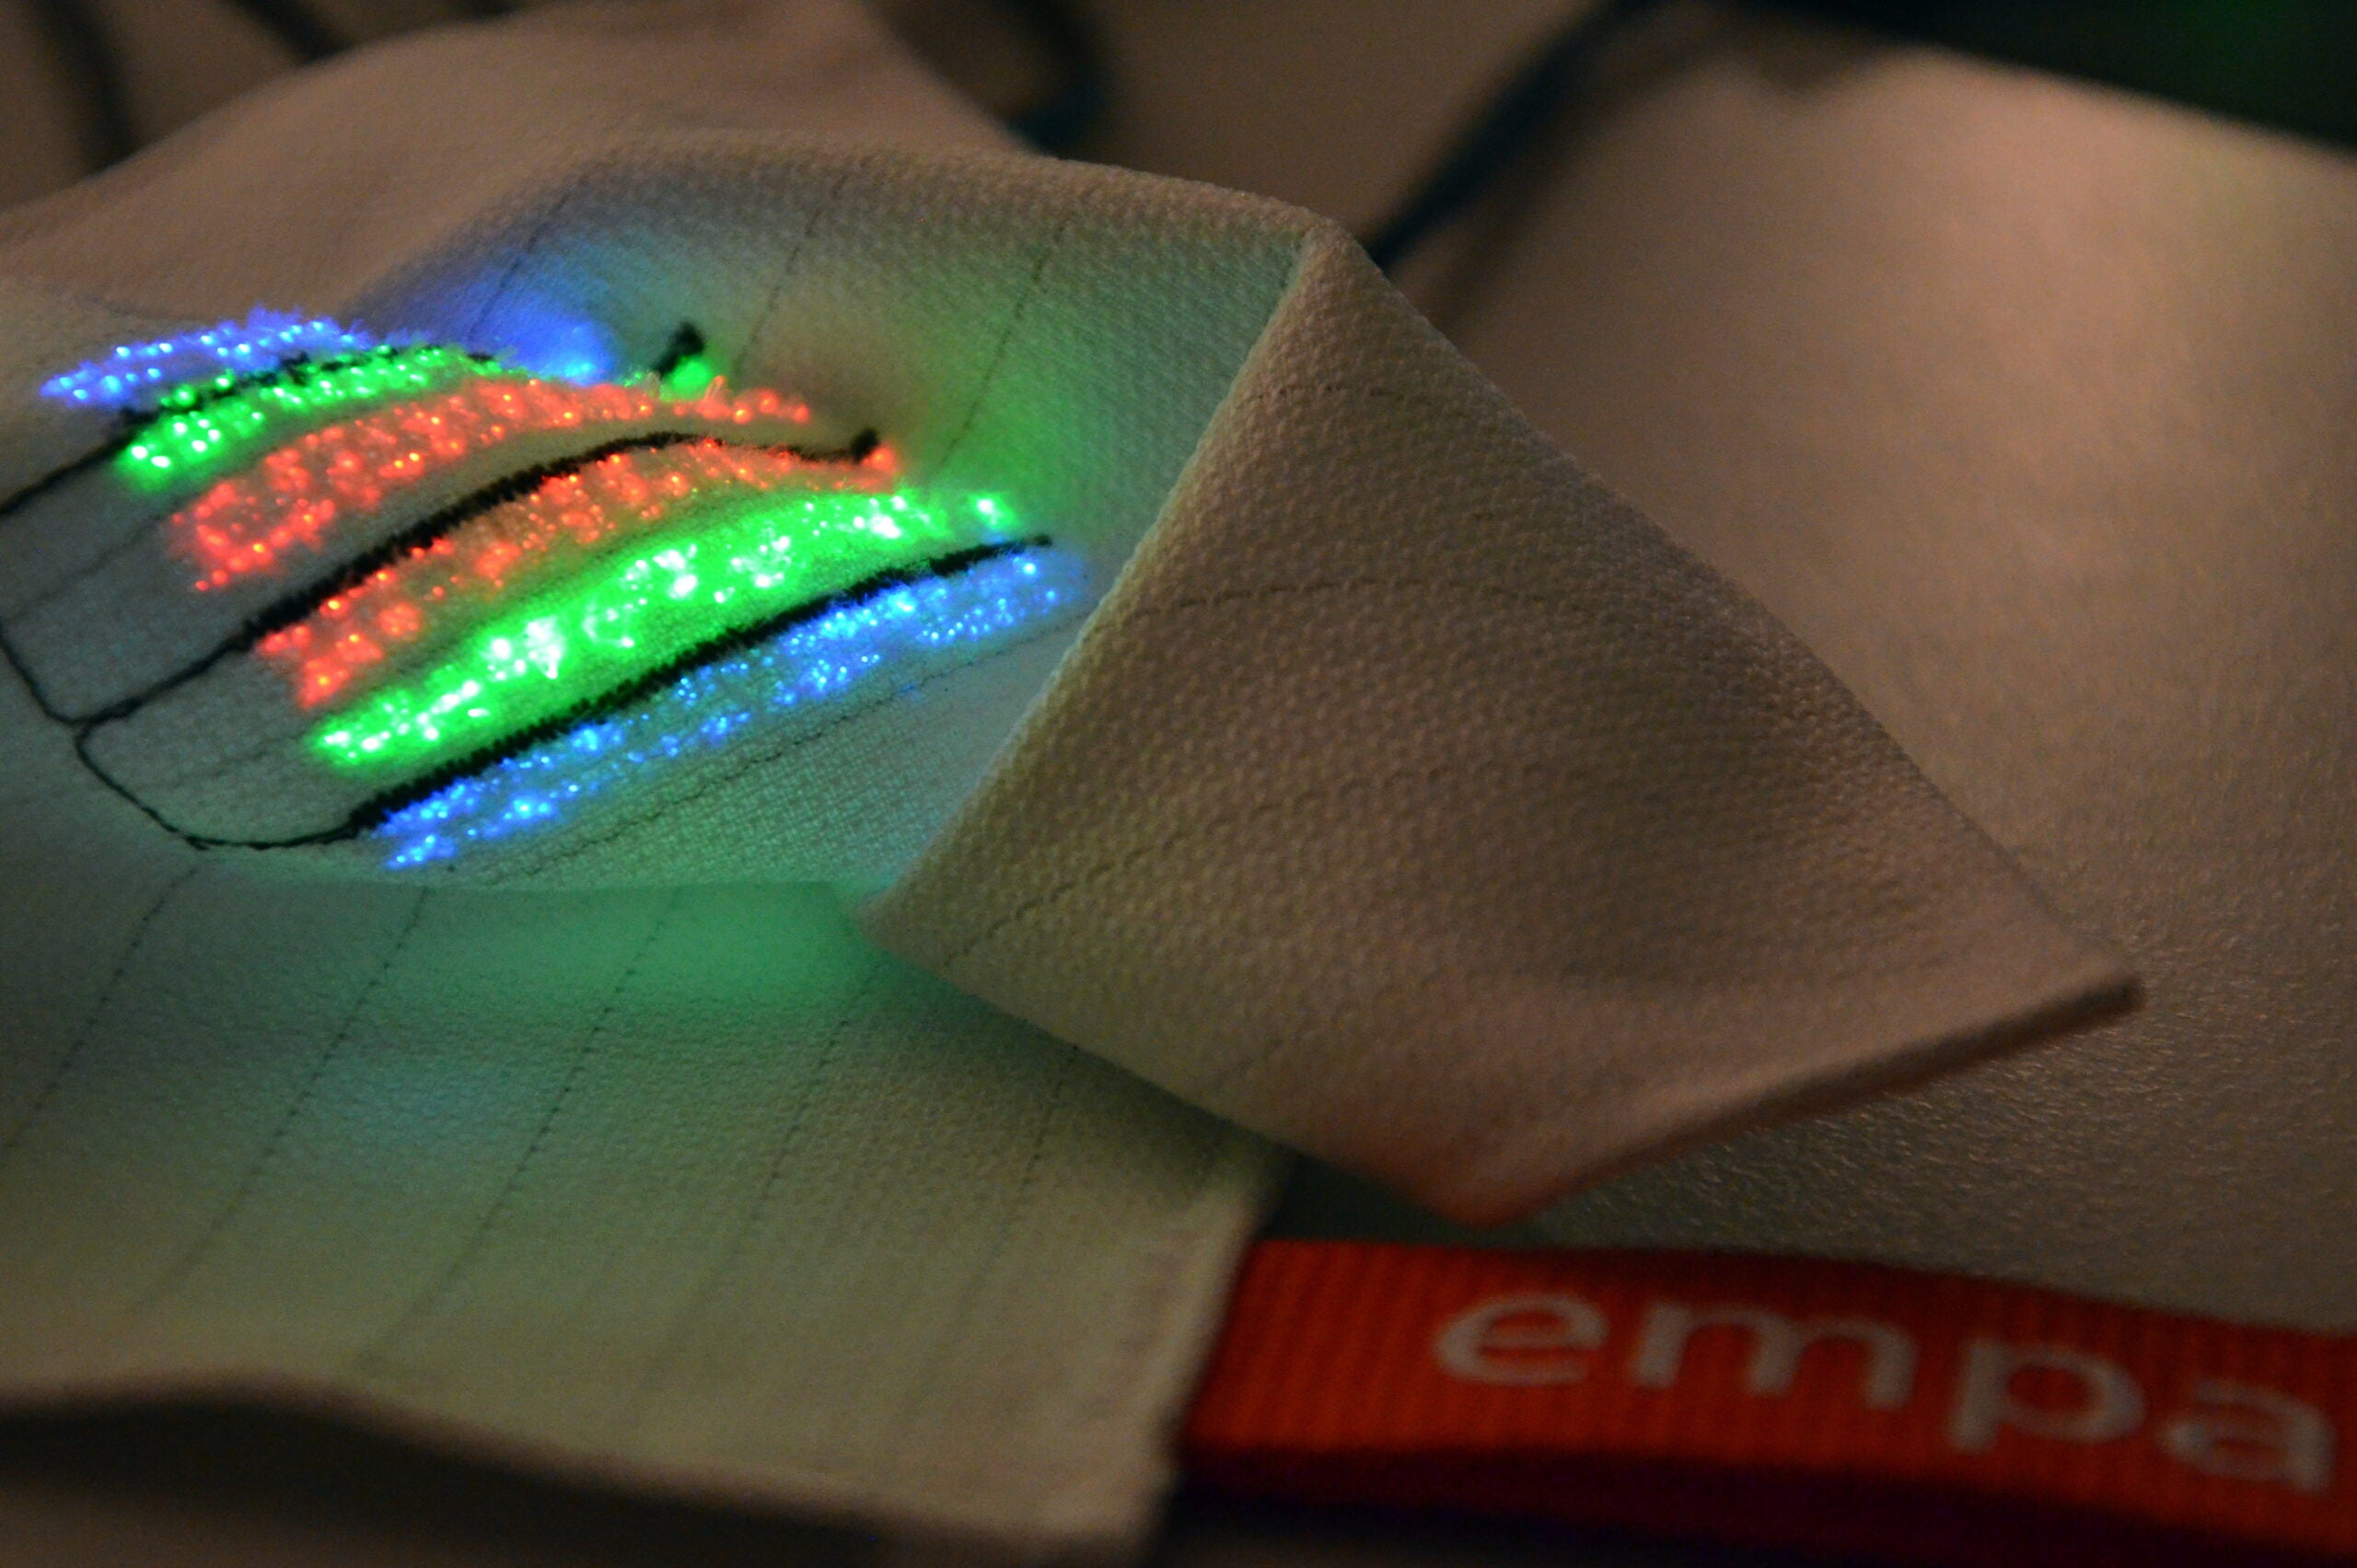 Washable heartbeat sensors can now be embroidered onto clothing